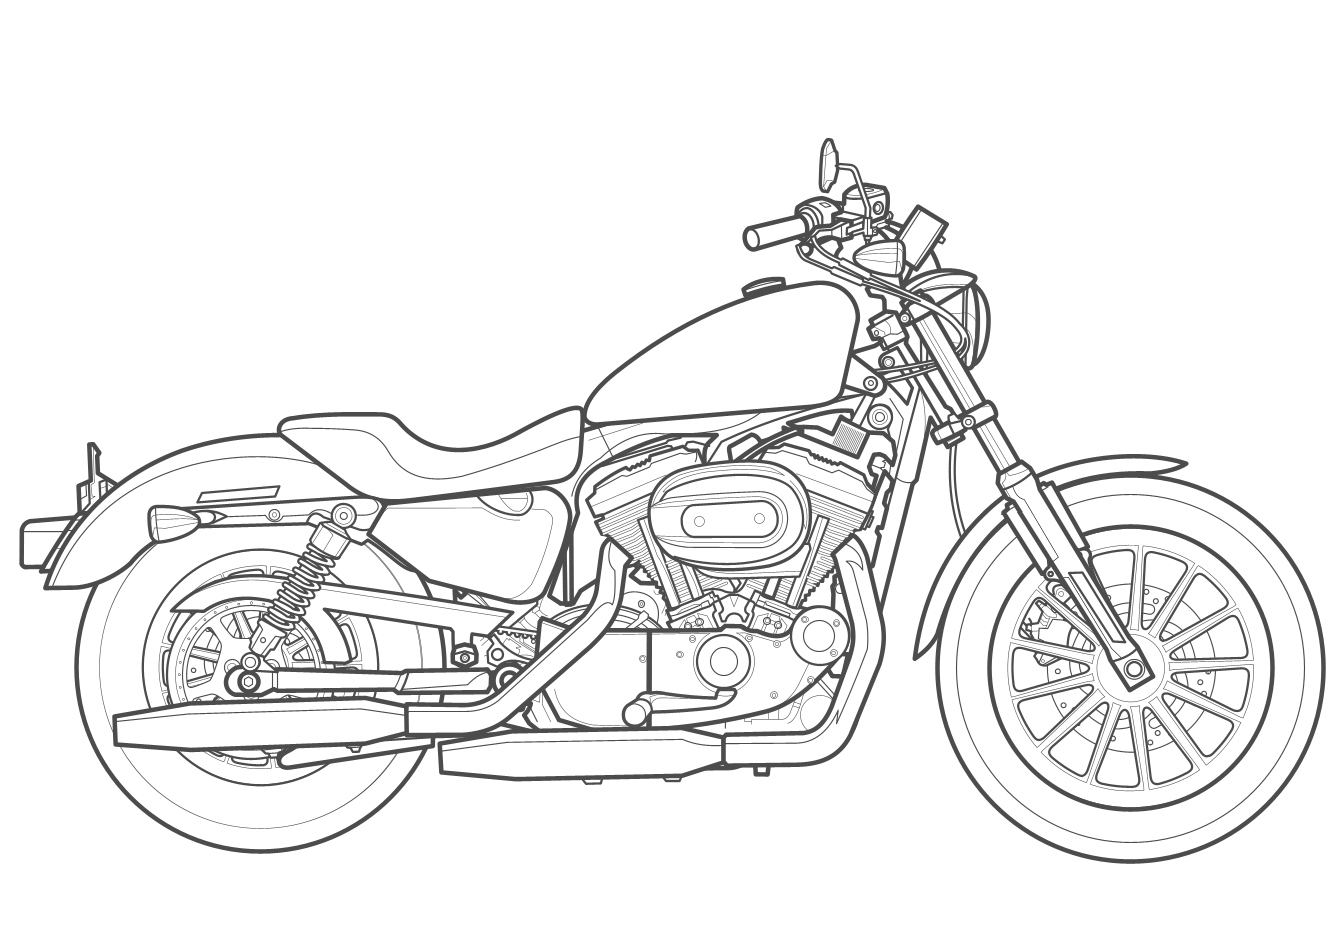 Coloring Pages Harley Davidson At Getcolorings